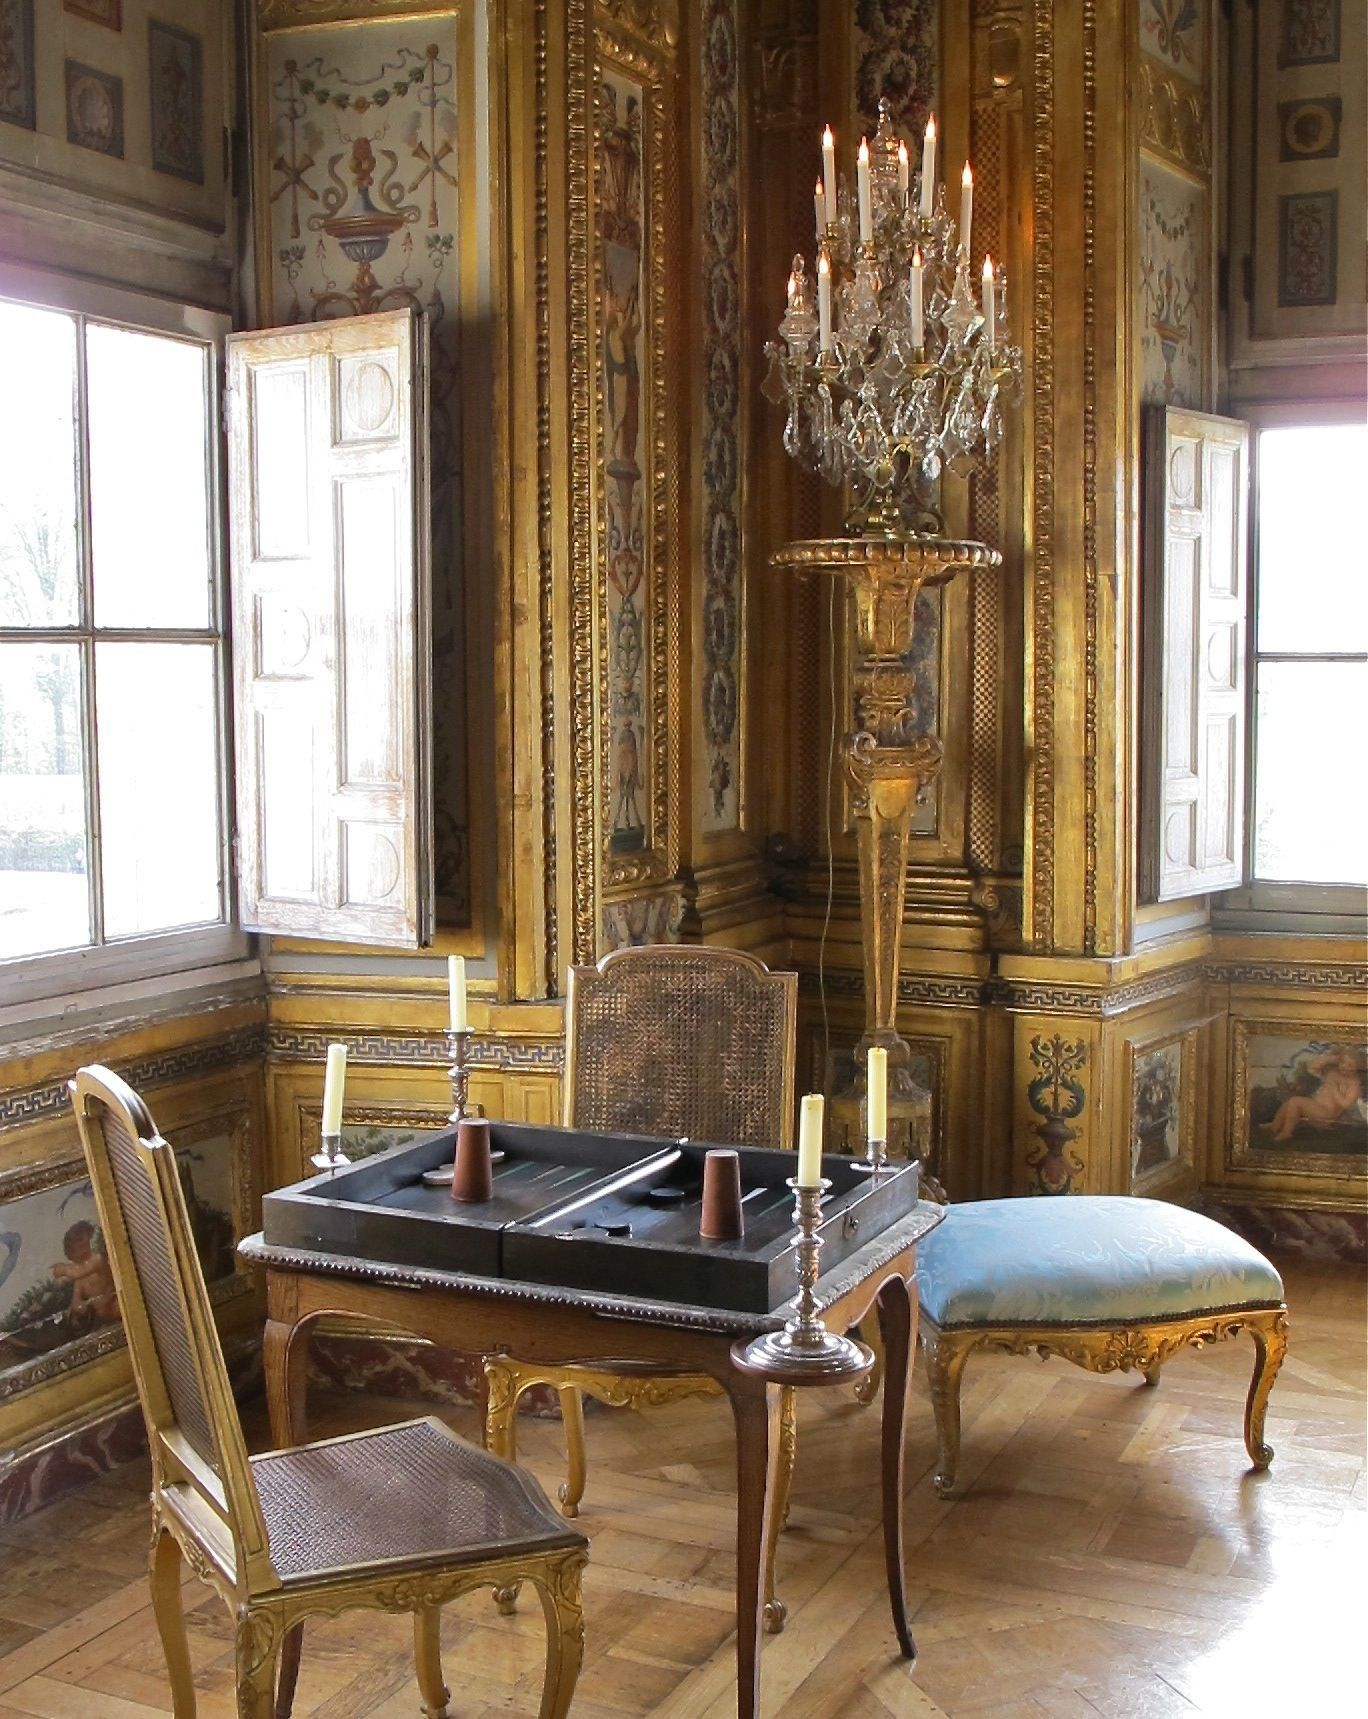 French Interior Design: French 17th Century Architecture And Décor, Chateau Vaux